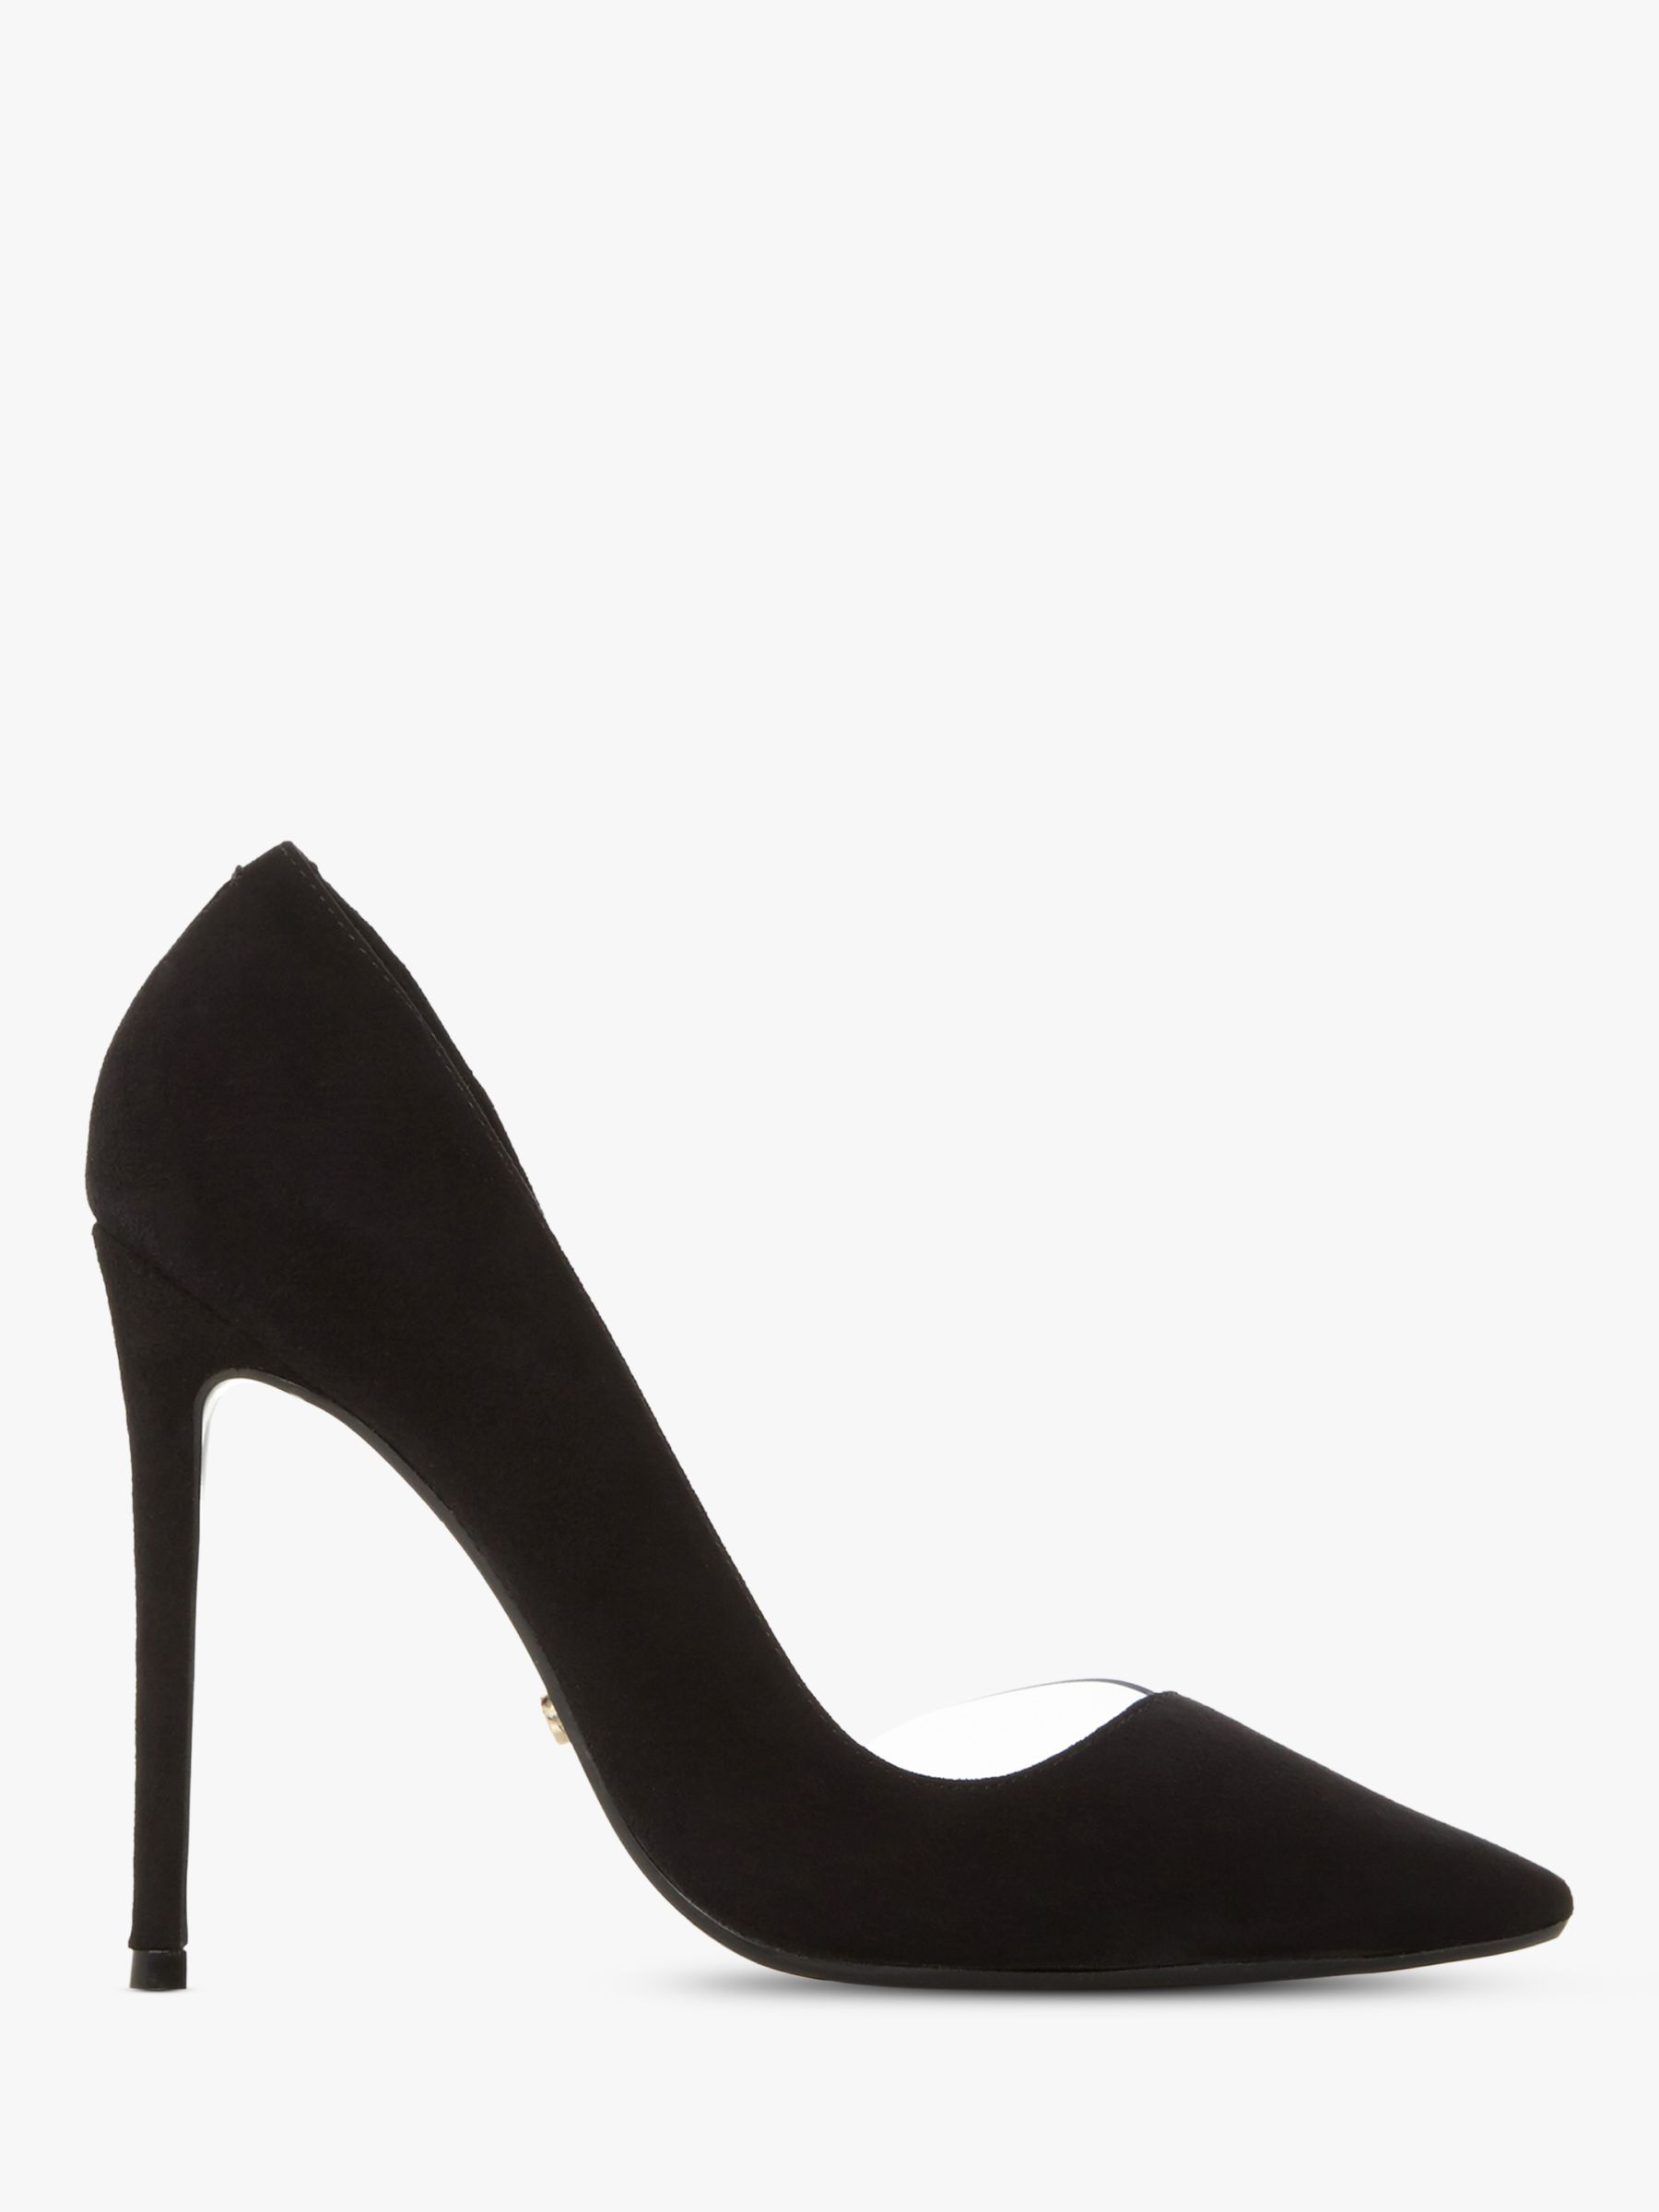 408fe41d21 Dune Christyna Stiletto Heel Court Shoes | Black Suede at John Lewis &  Partners